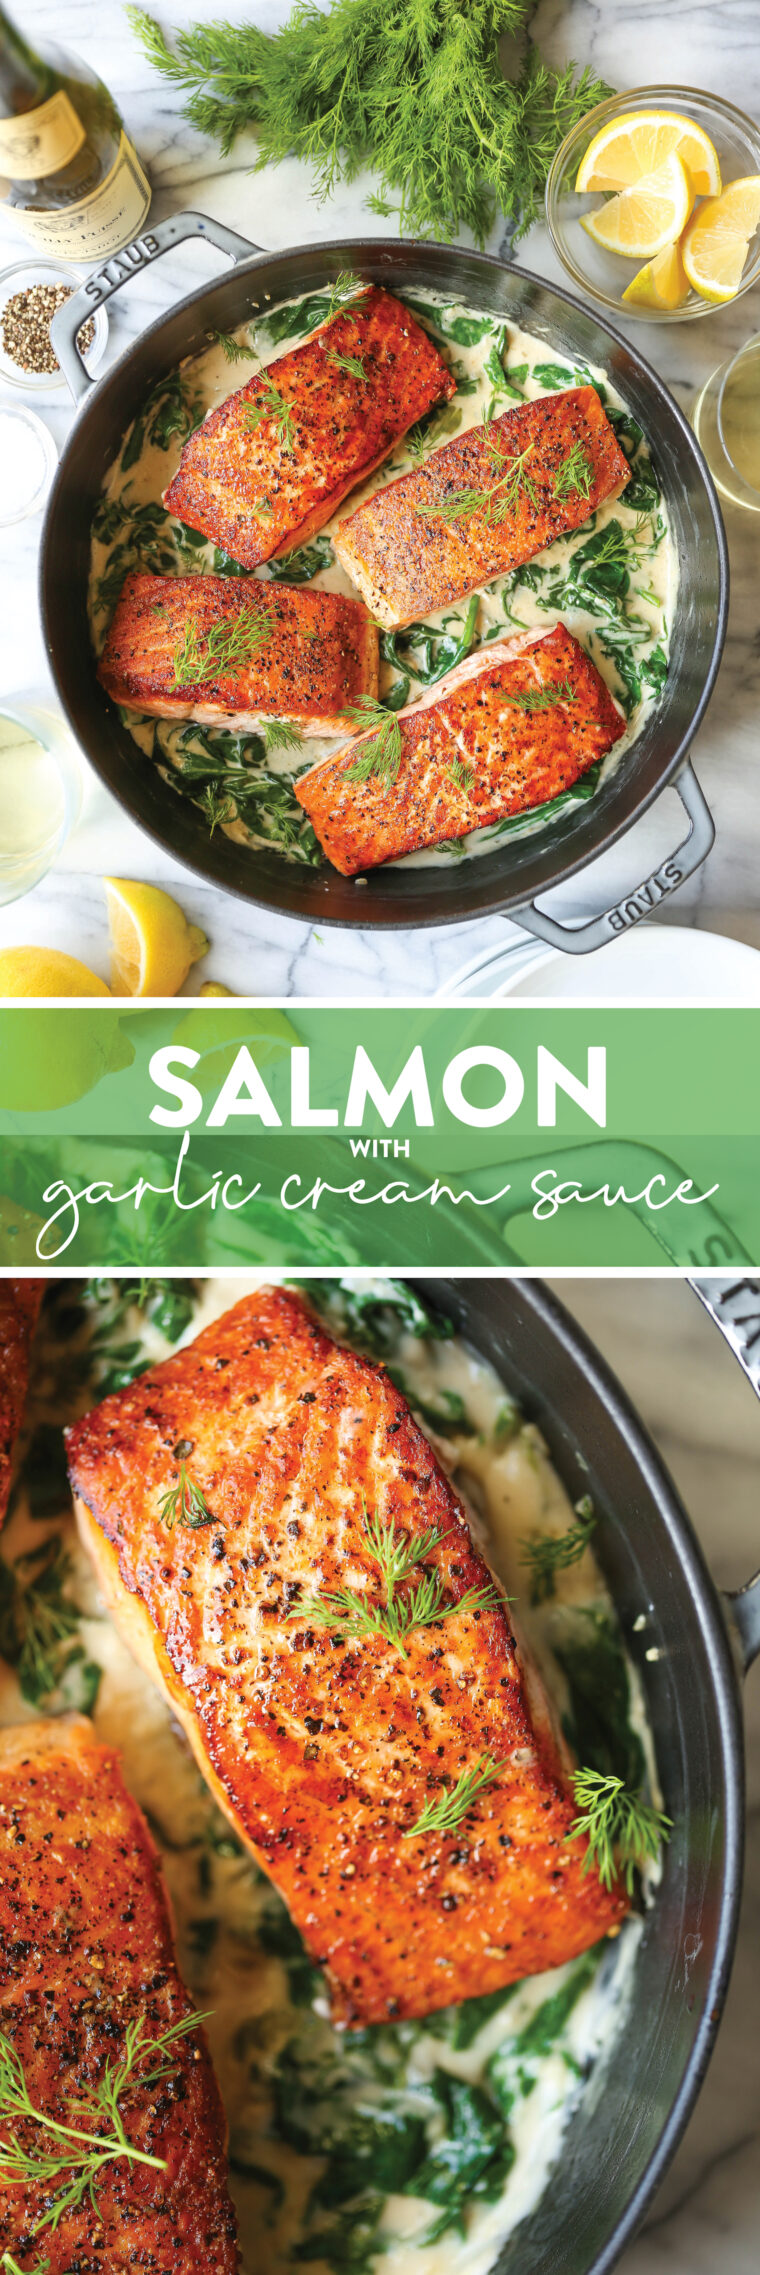 Salmon with Garlic Cream Sauce - Perfectly pan-seared salmon served with the most irresistible garlicky cream sauce with sneaked in spinach!